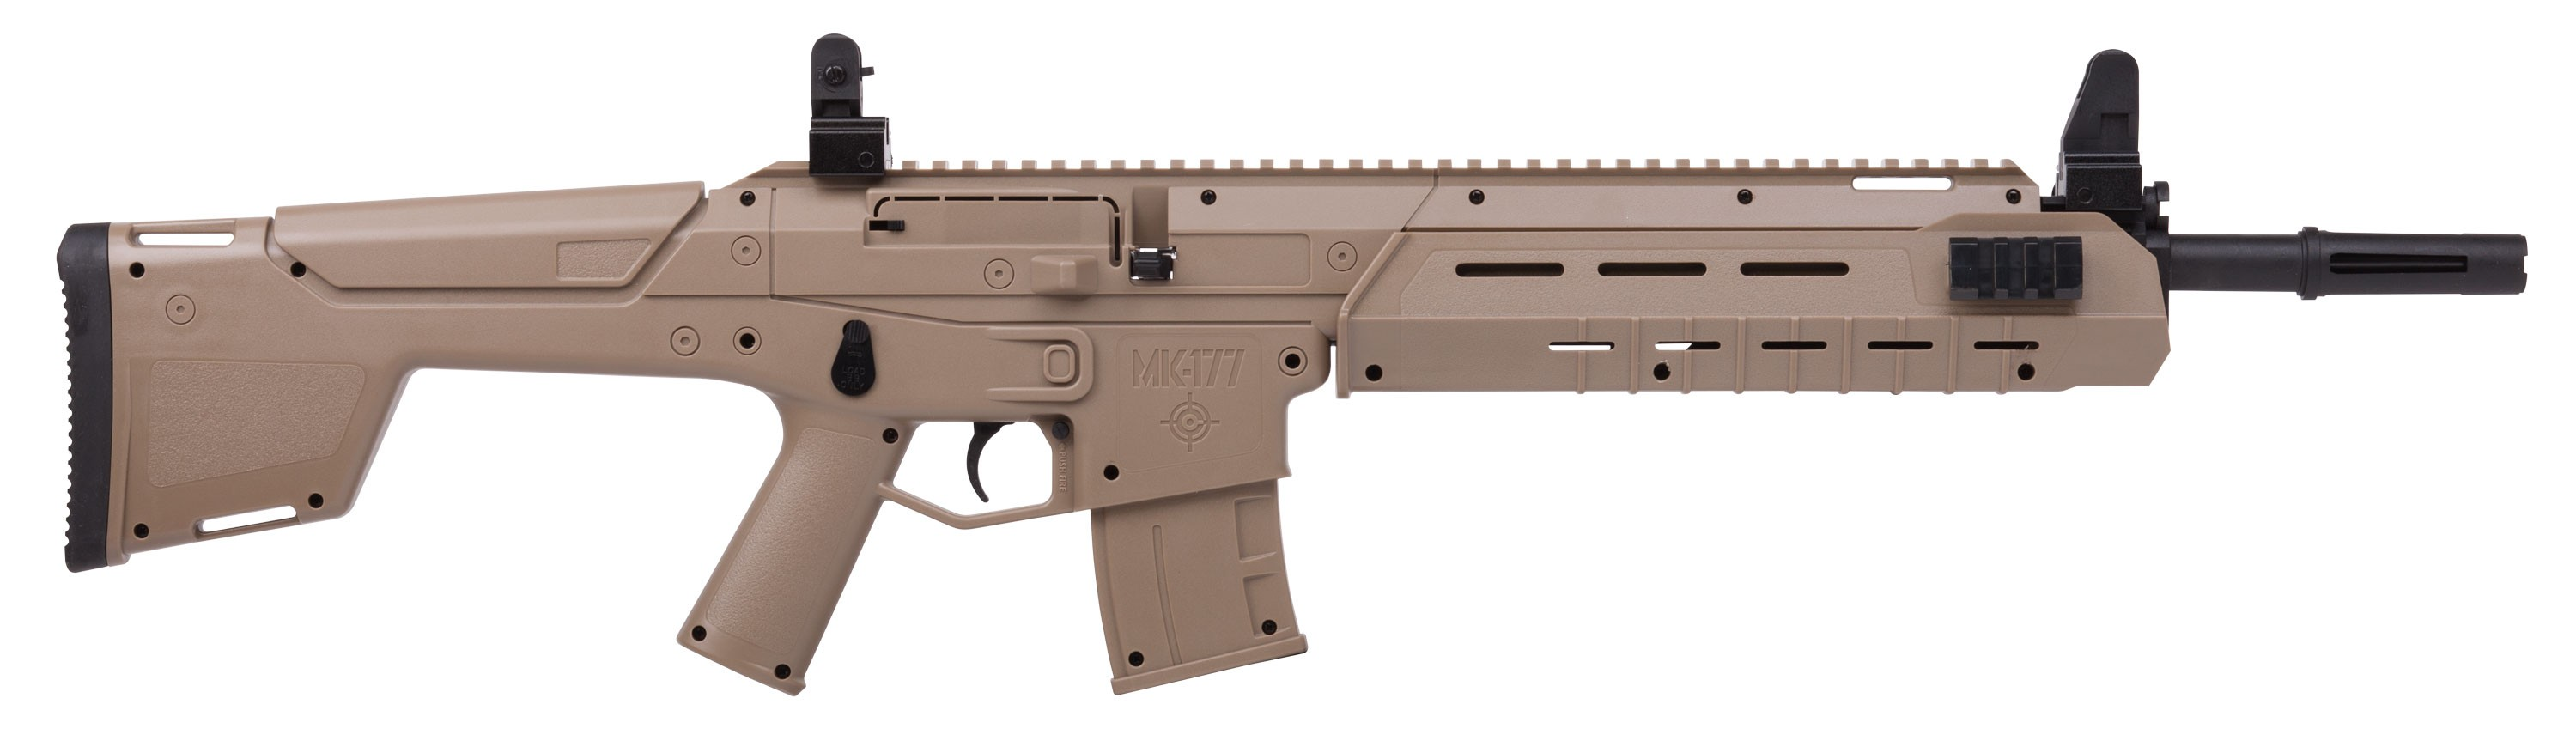 crosman mk-177 tan tactical air rifle specs